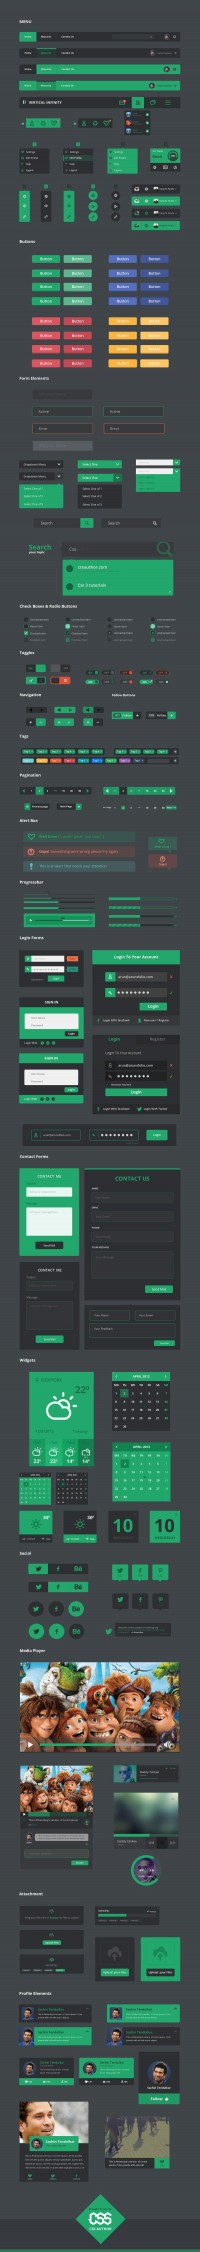 Vertical Infinity - Flat UI Kit (PSD) - Designer First